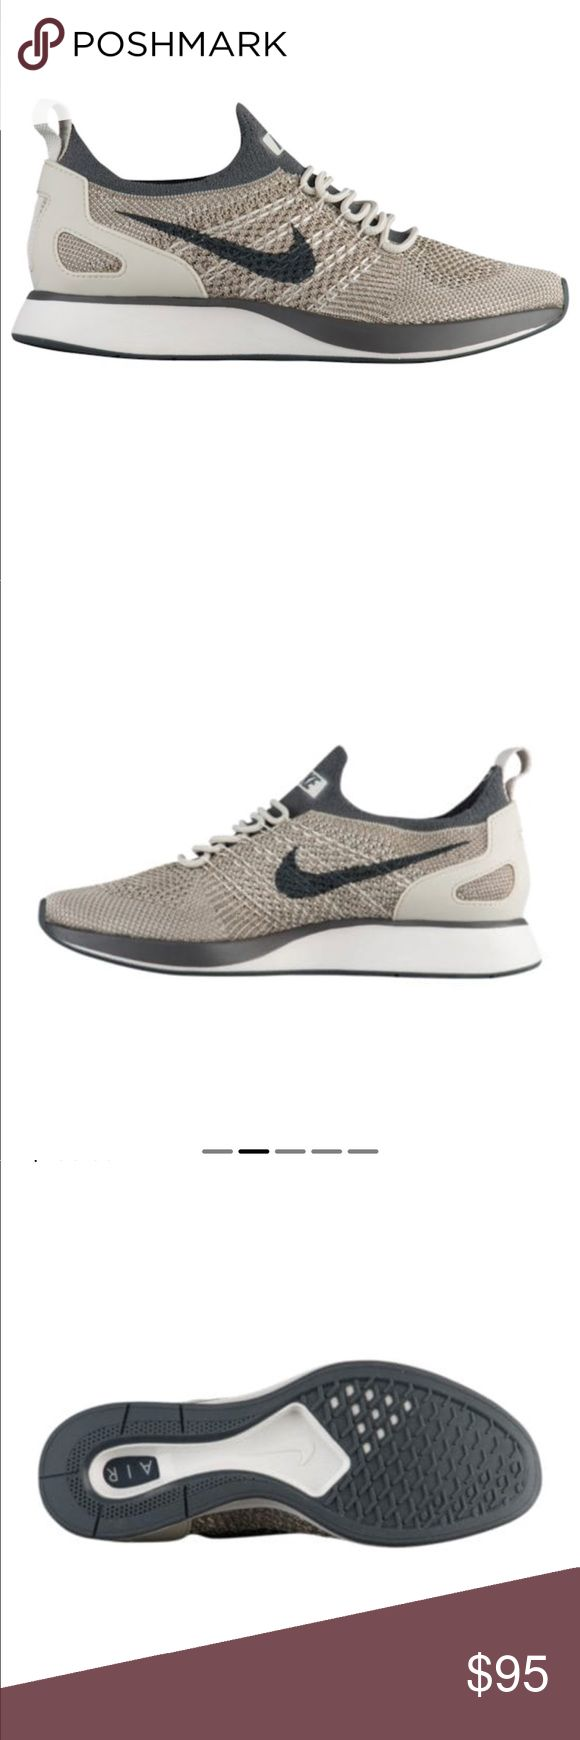 🌼[Nike] Wmns Nike Air Zoom Mariah Flyknit Racer🌼 Women's Nike Air Zoom Mariah Flyknit Racer Casual Shoes in Pale Grey/Dark Grey/Summit White Size 6 - These have only been worn twice. They come with the original box and are in excellent condition. They are still selling in stores for the original price of $150. Get them before they're gone!! 😊 Nike Shoes Sneakers